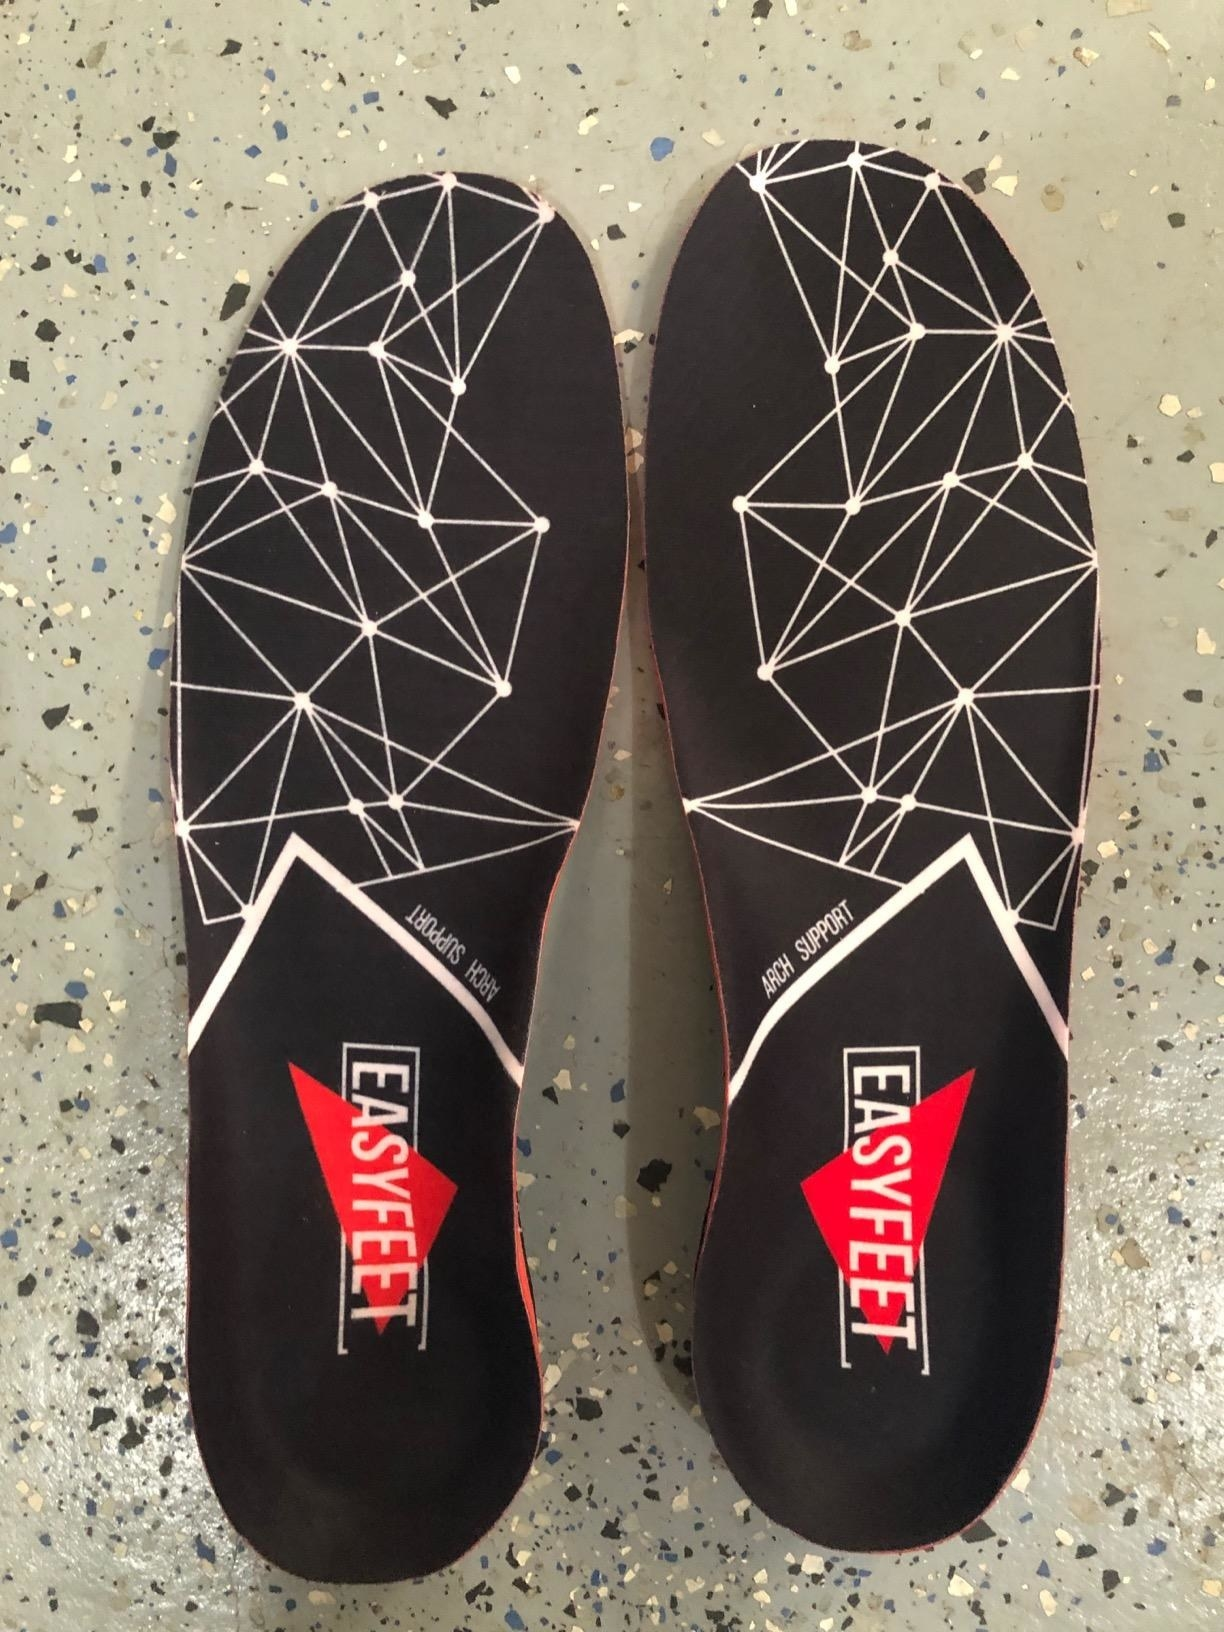 reviewer's set of insoles